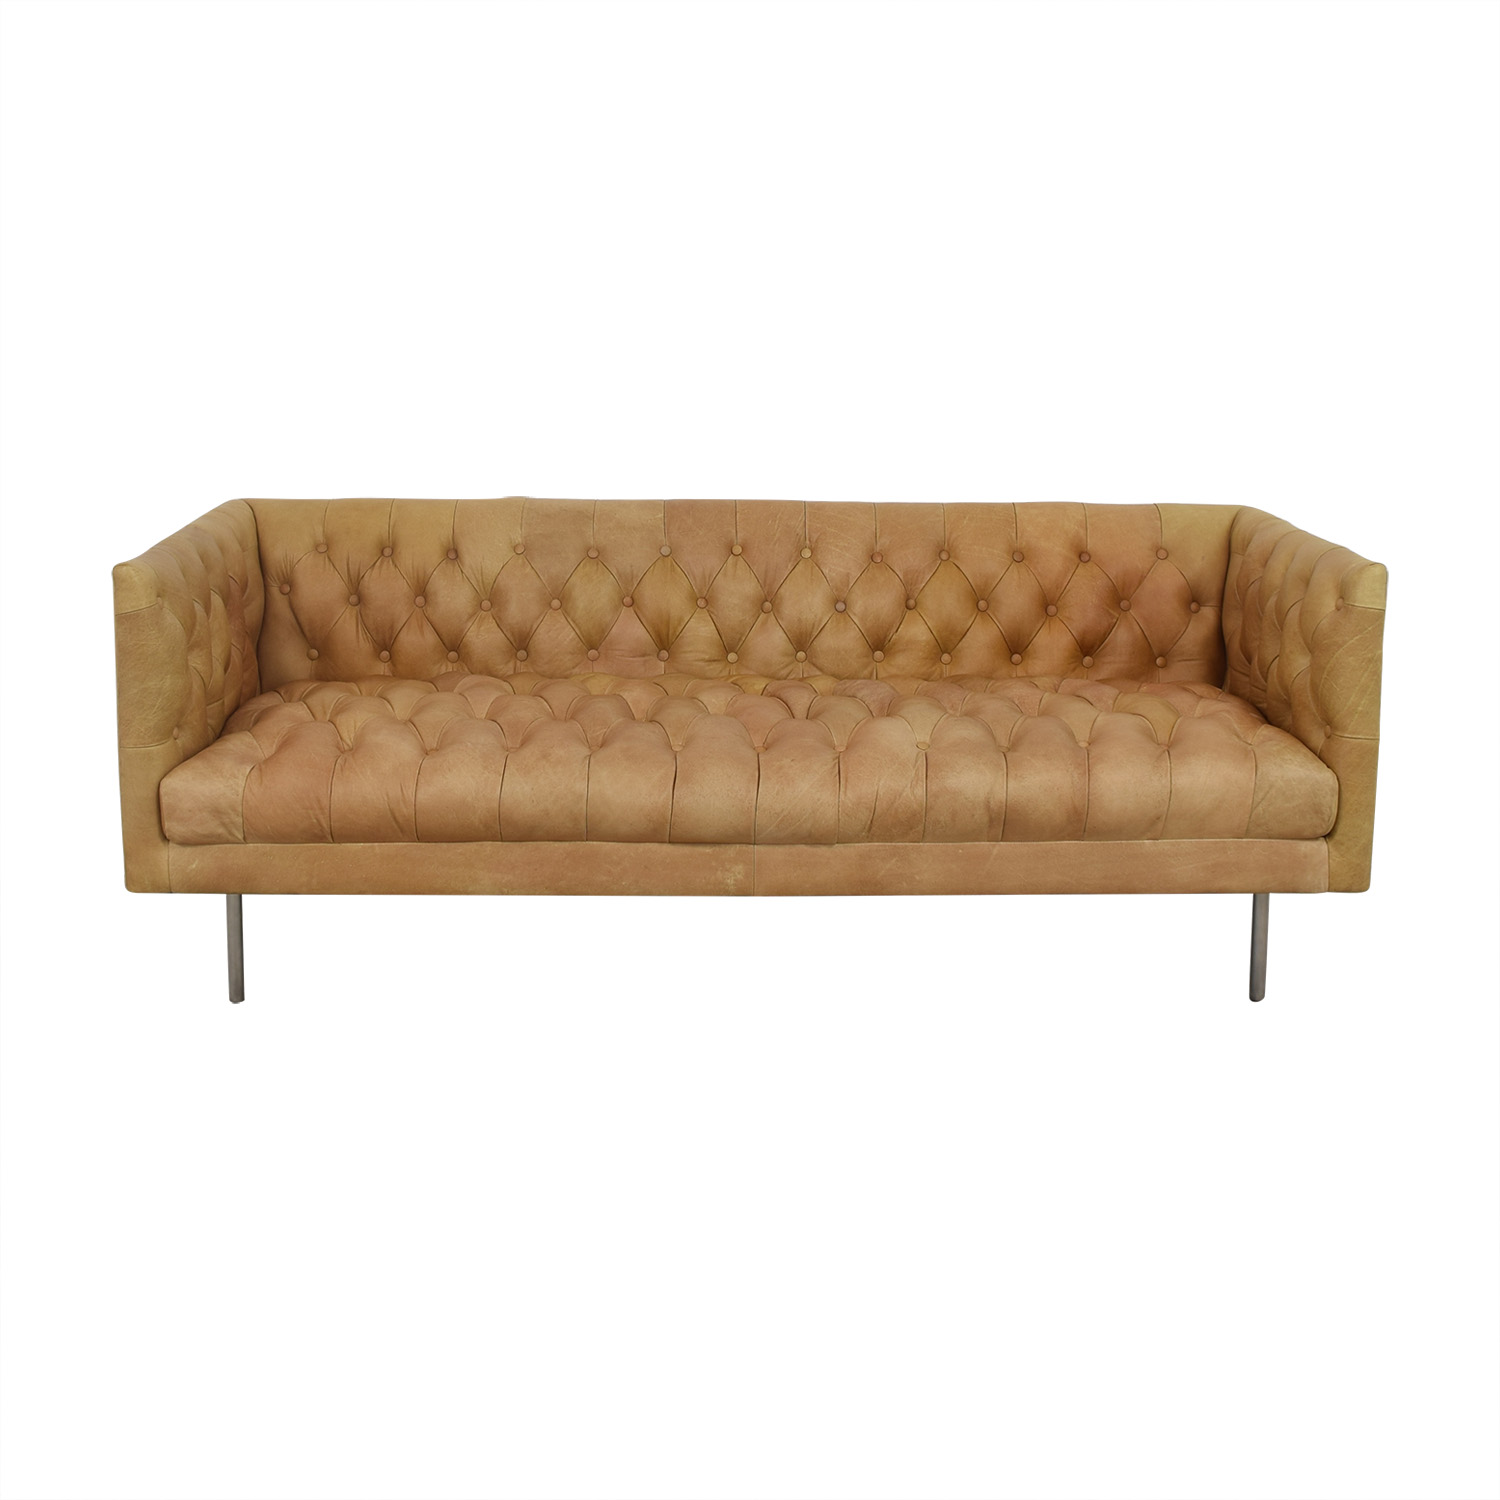 45 Off West Elm Modern Chesterfield Sofa Sofas